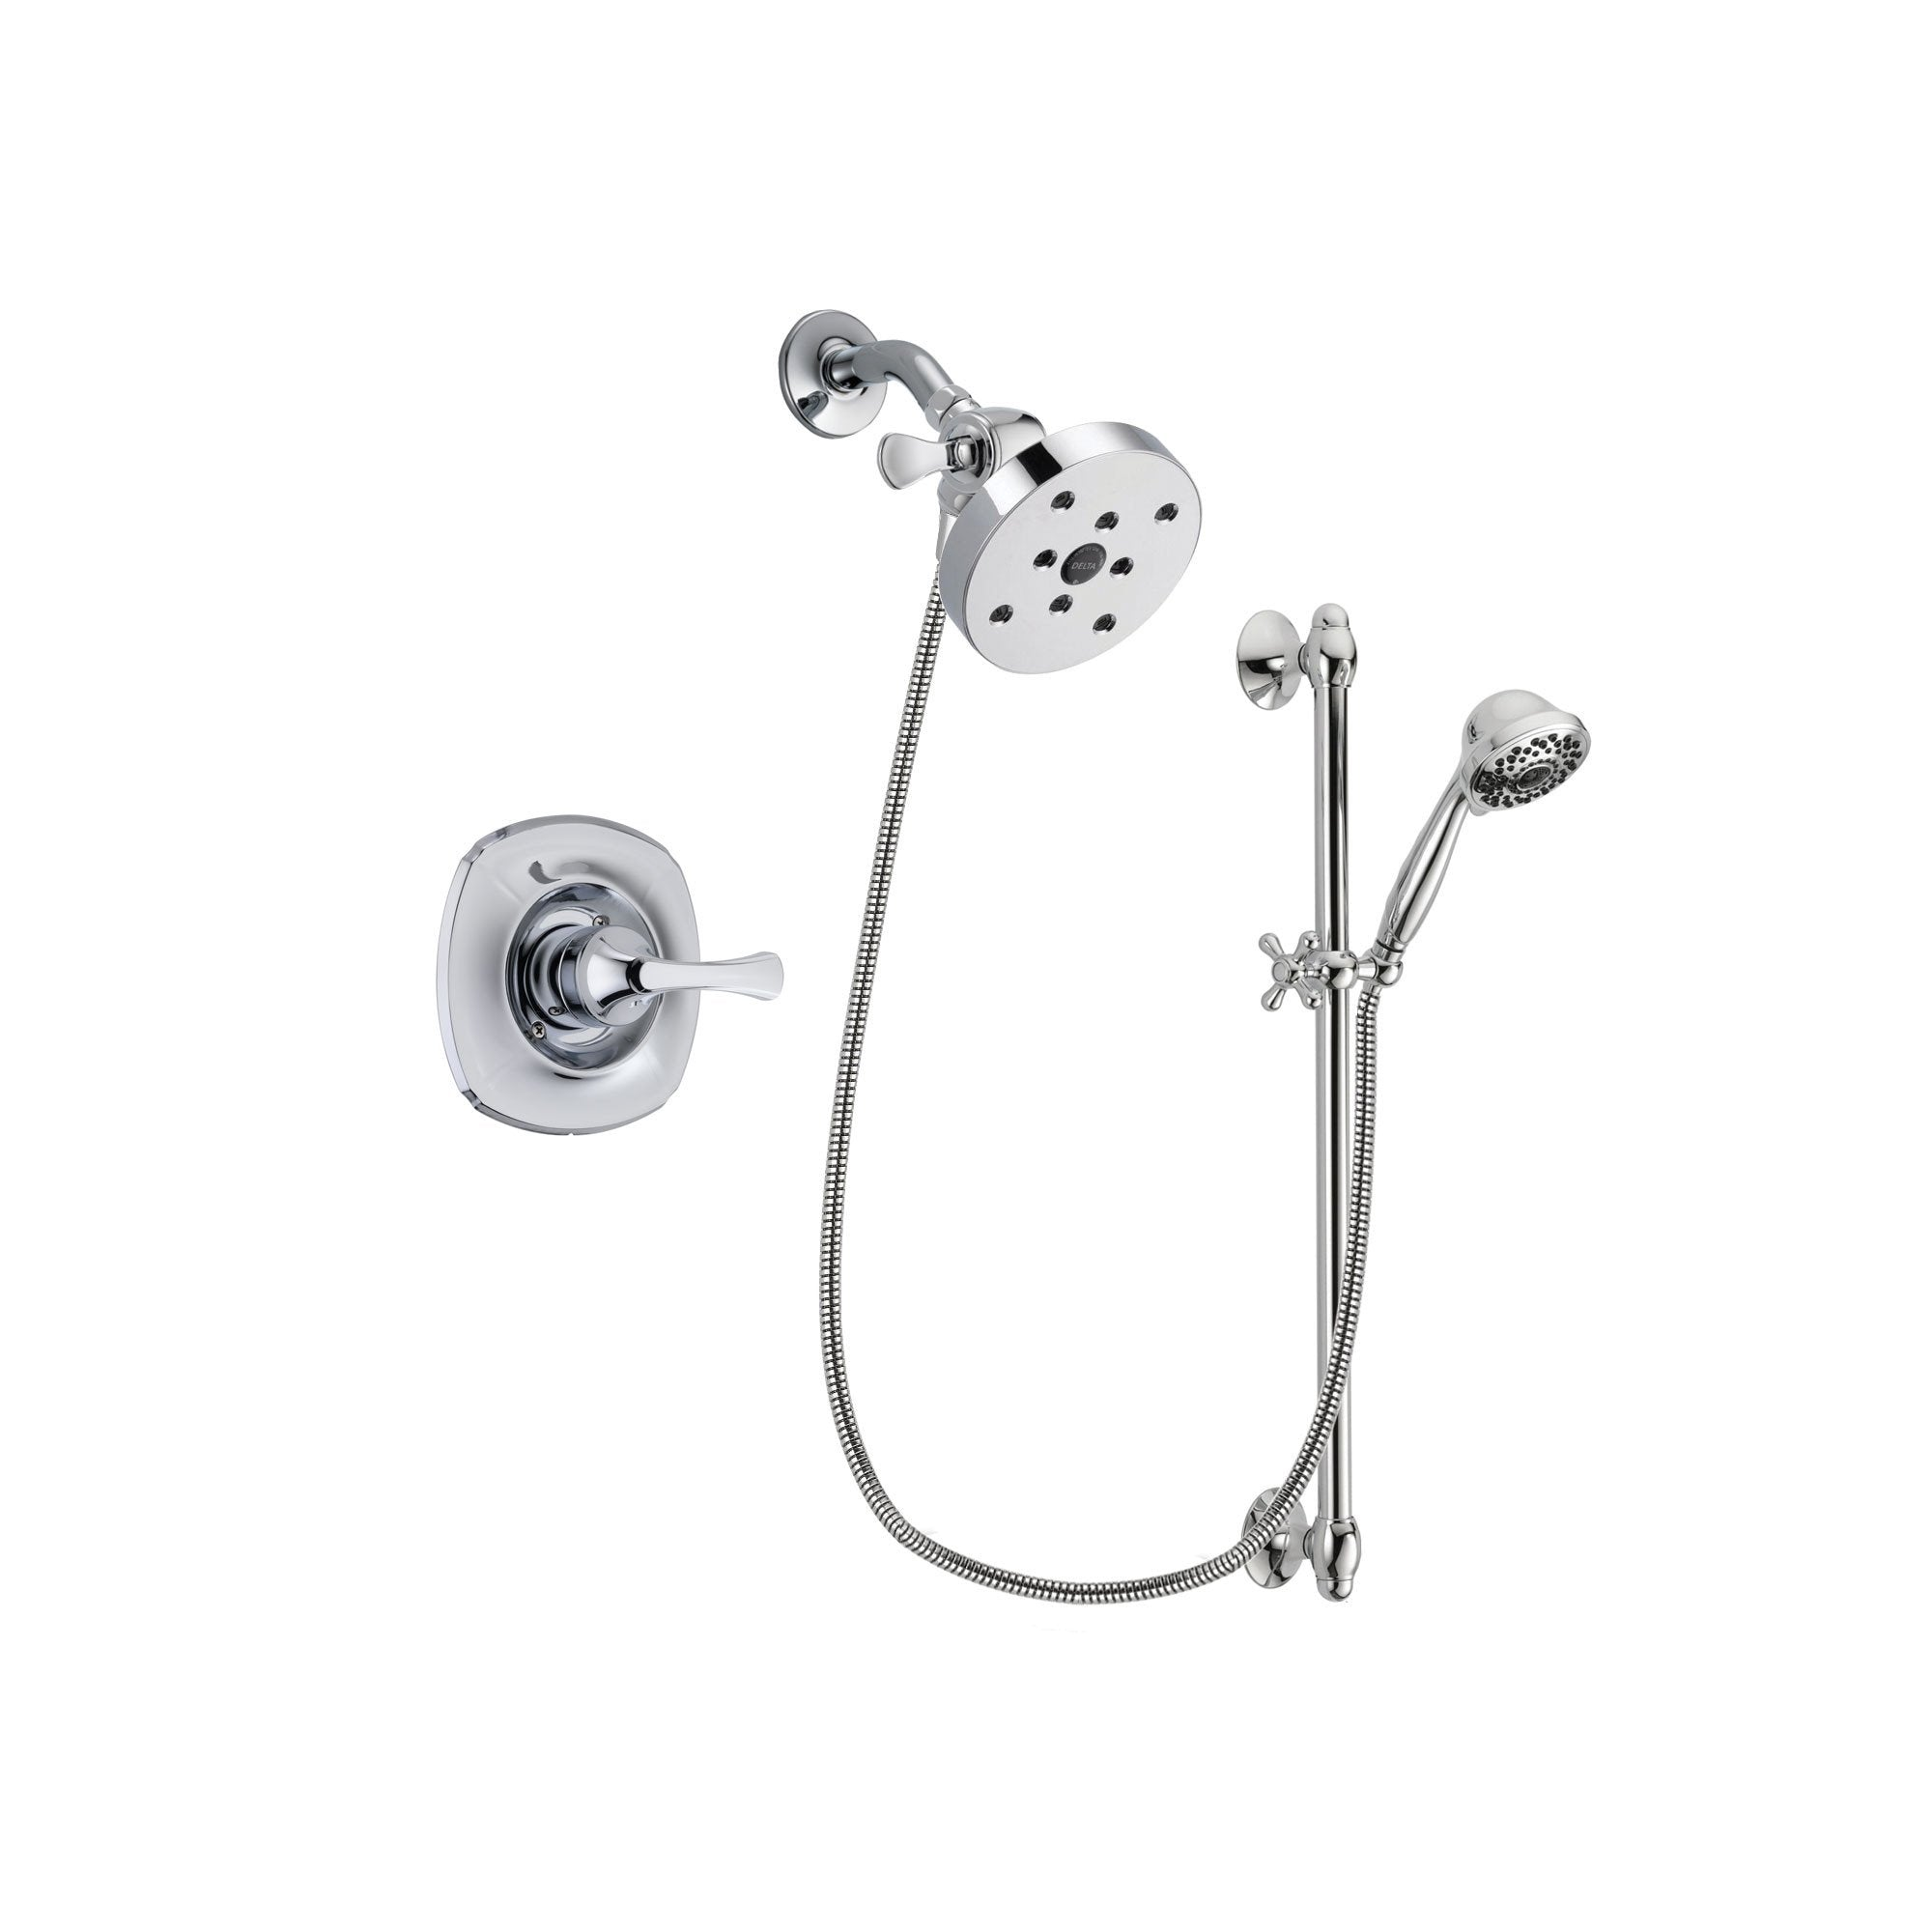 Delta Addison Chrome Shower Faucet System w/ Showerhead and Hand Shower DSP0680V